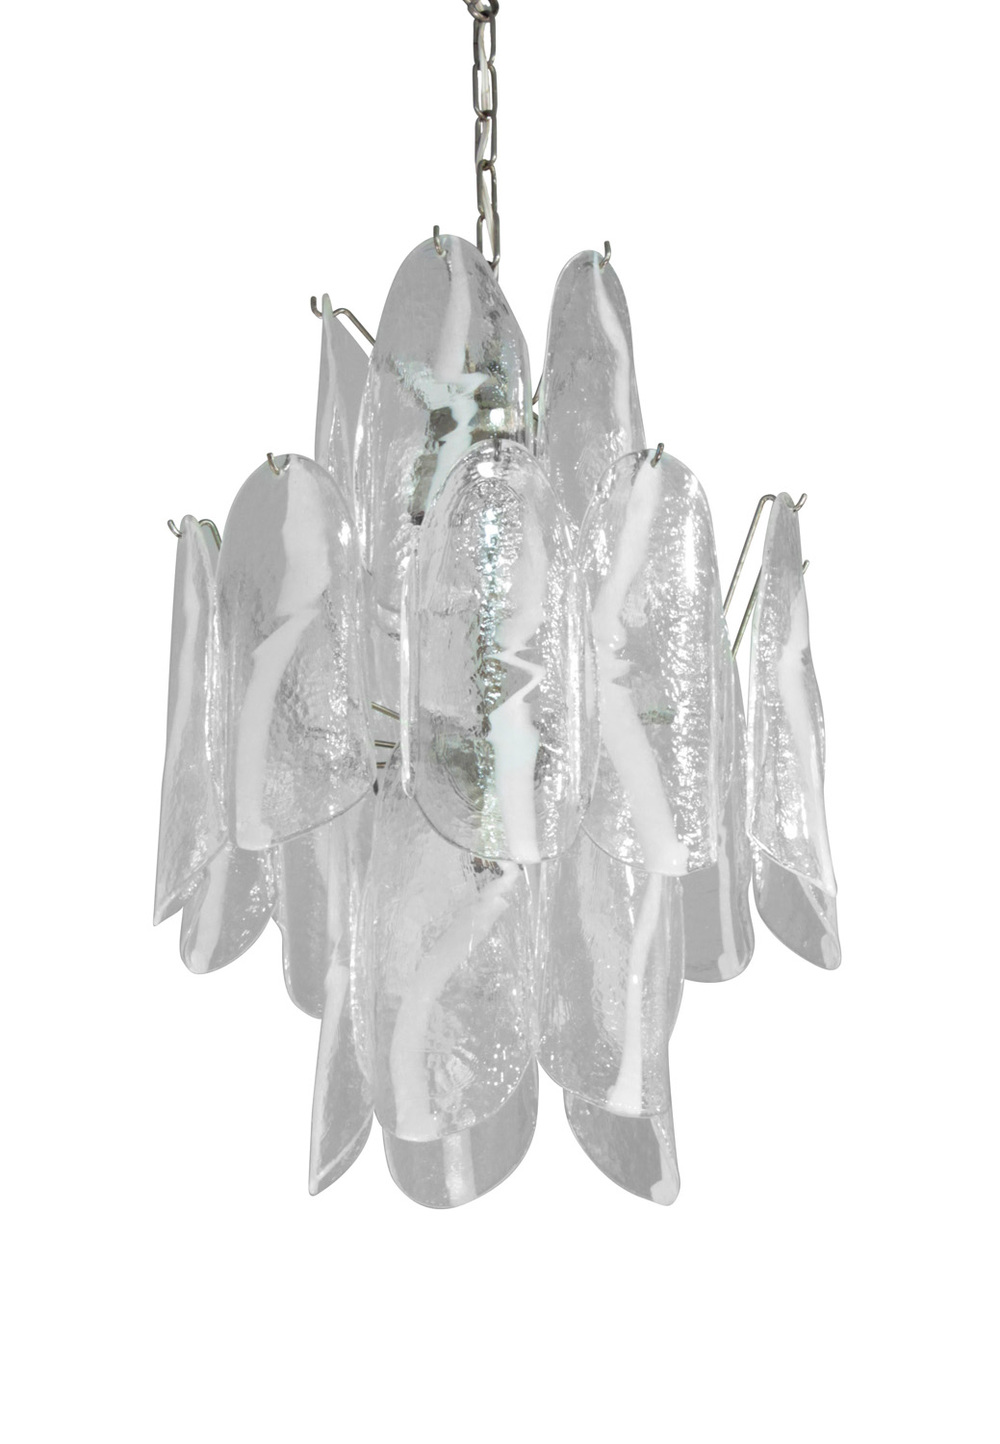 Mazzega 65 clear+white fasce chandelier196 hires.jpg